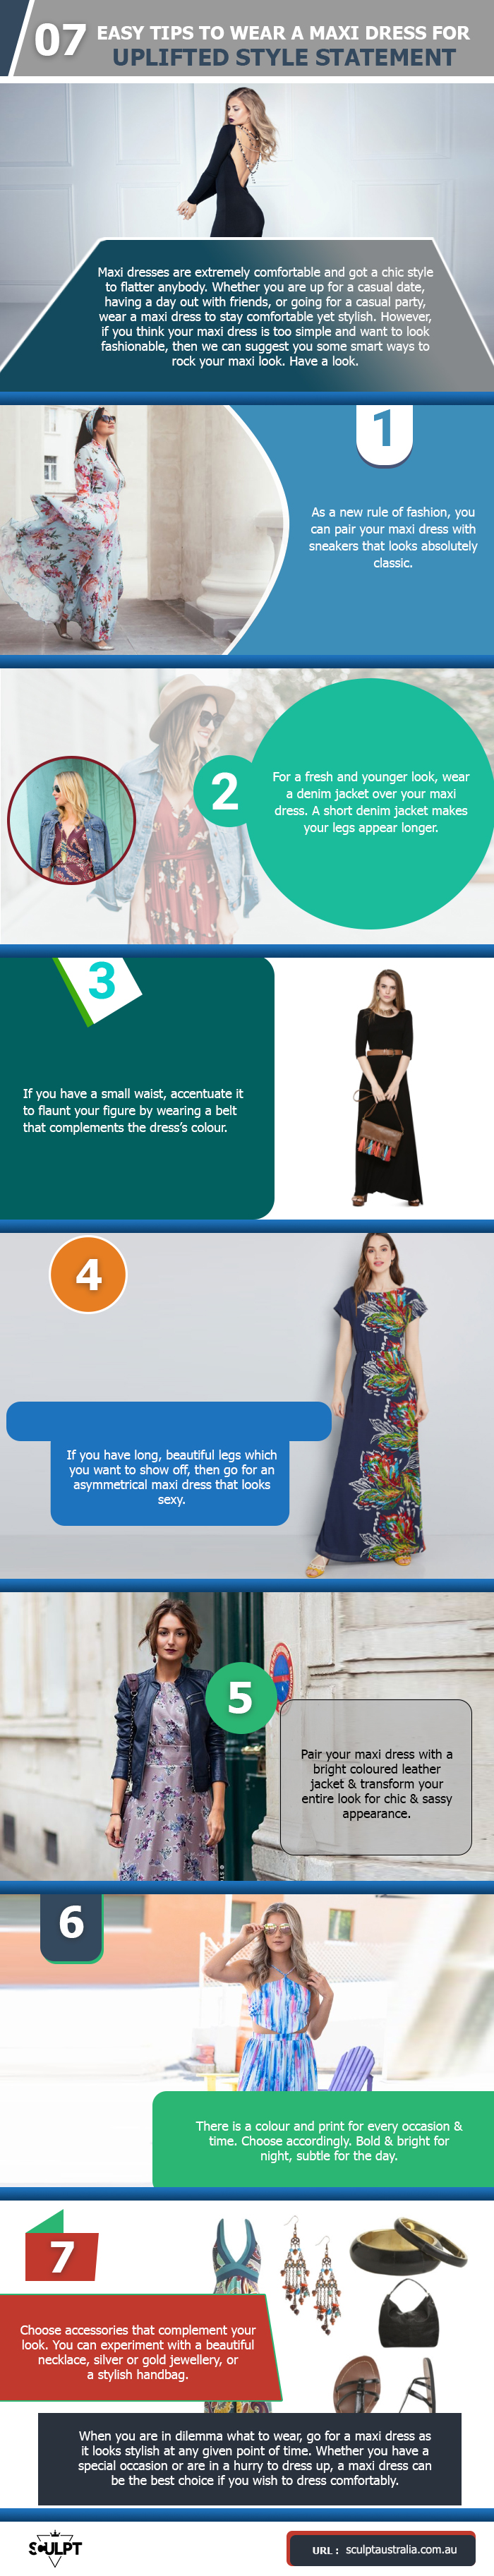 7 Easy Tips to Weare a Maxi Dress